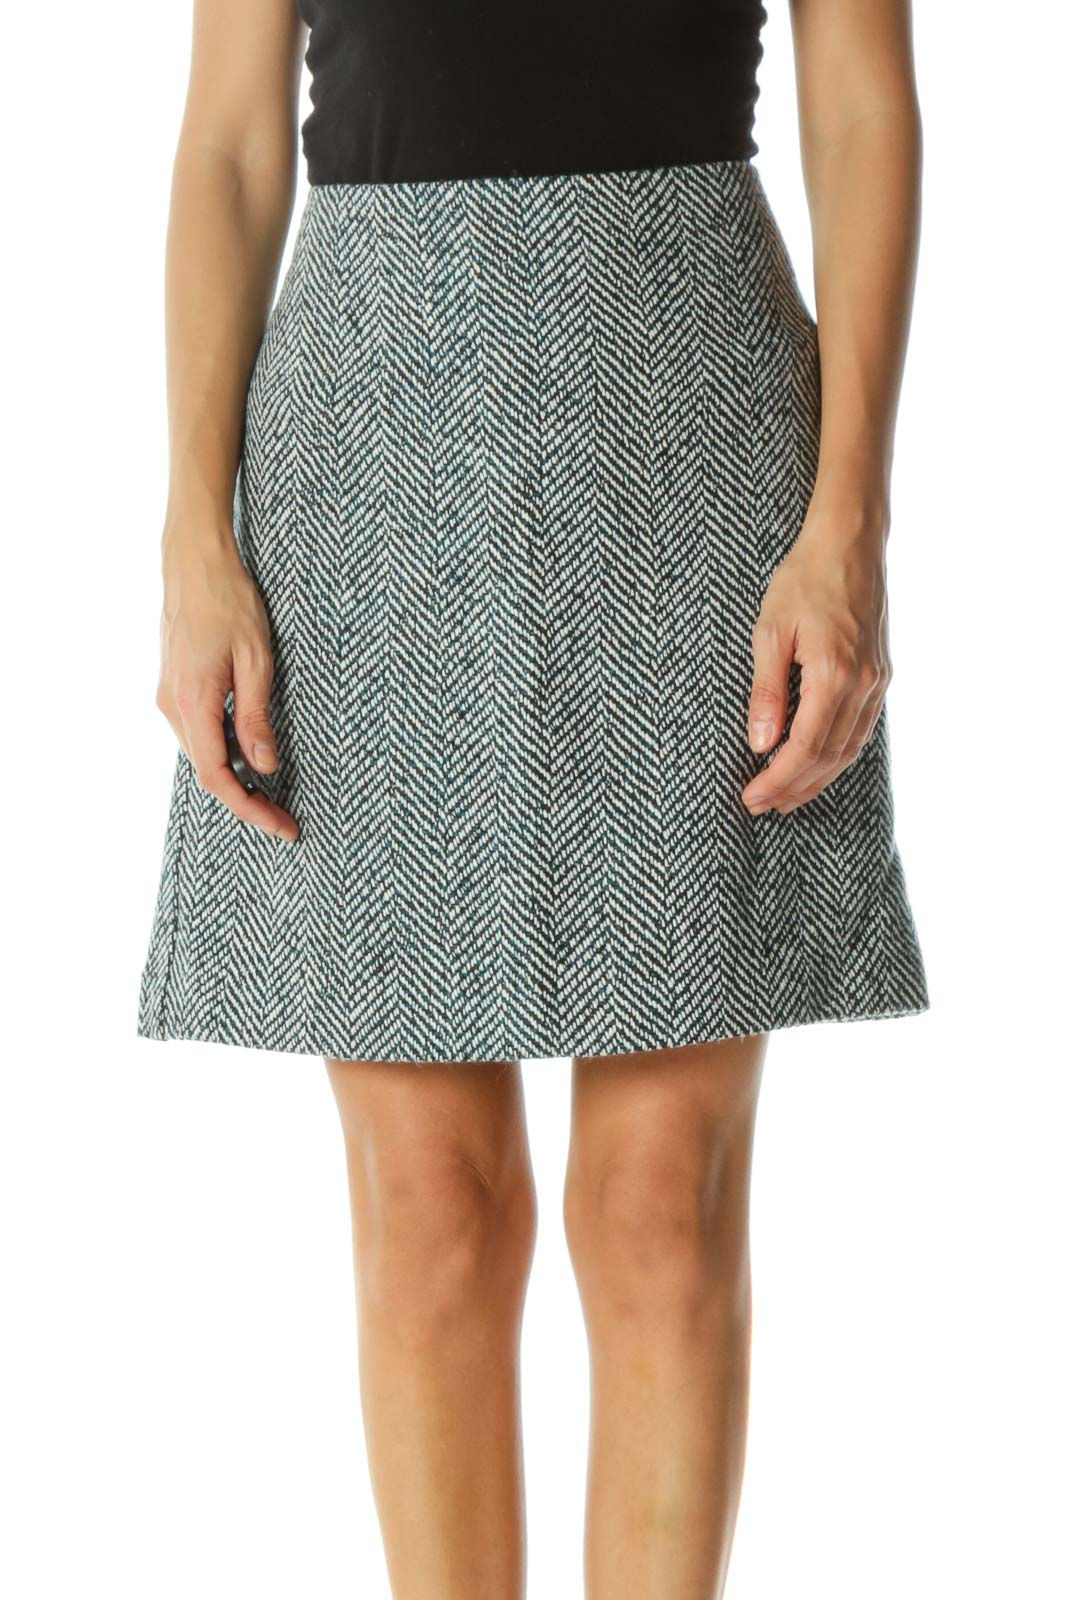 Blue White Black Wool Blend Cinched Waist Knit Skirt